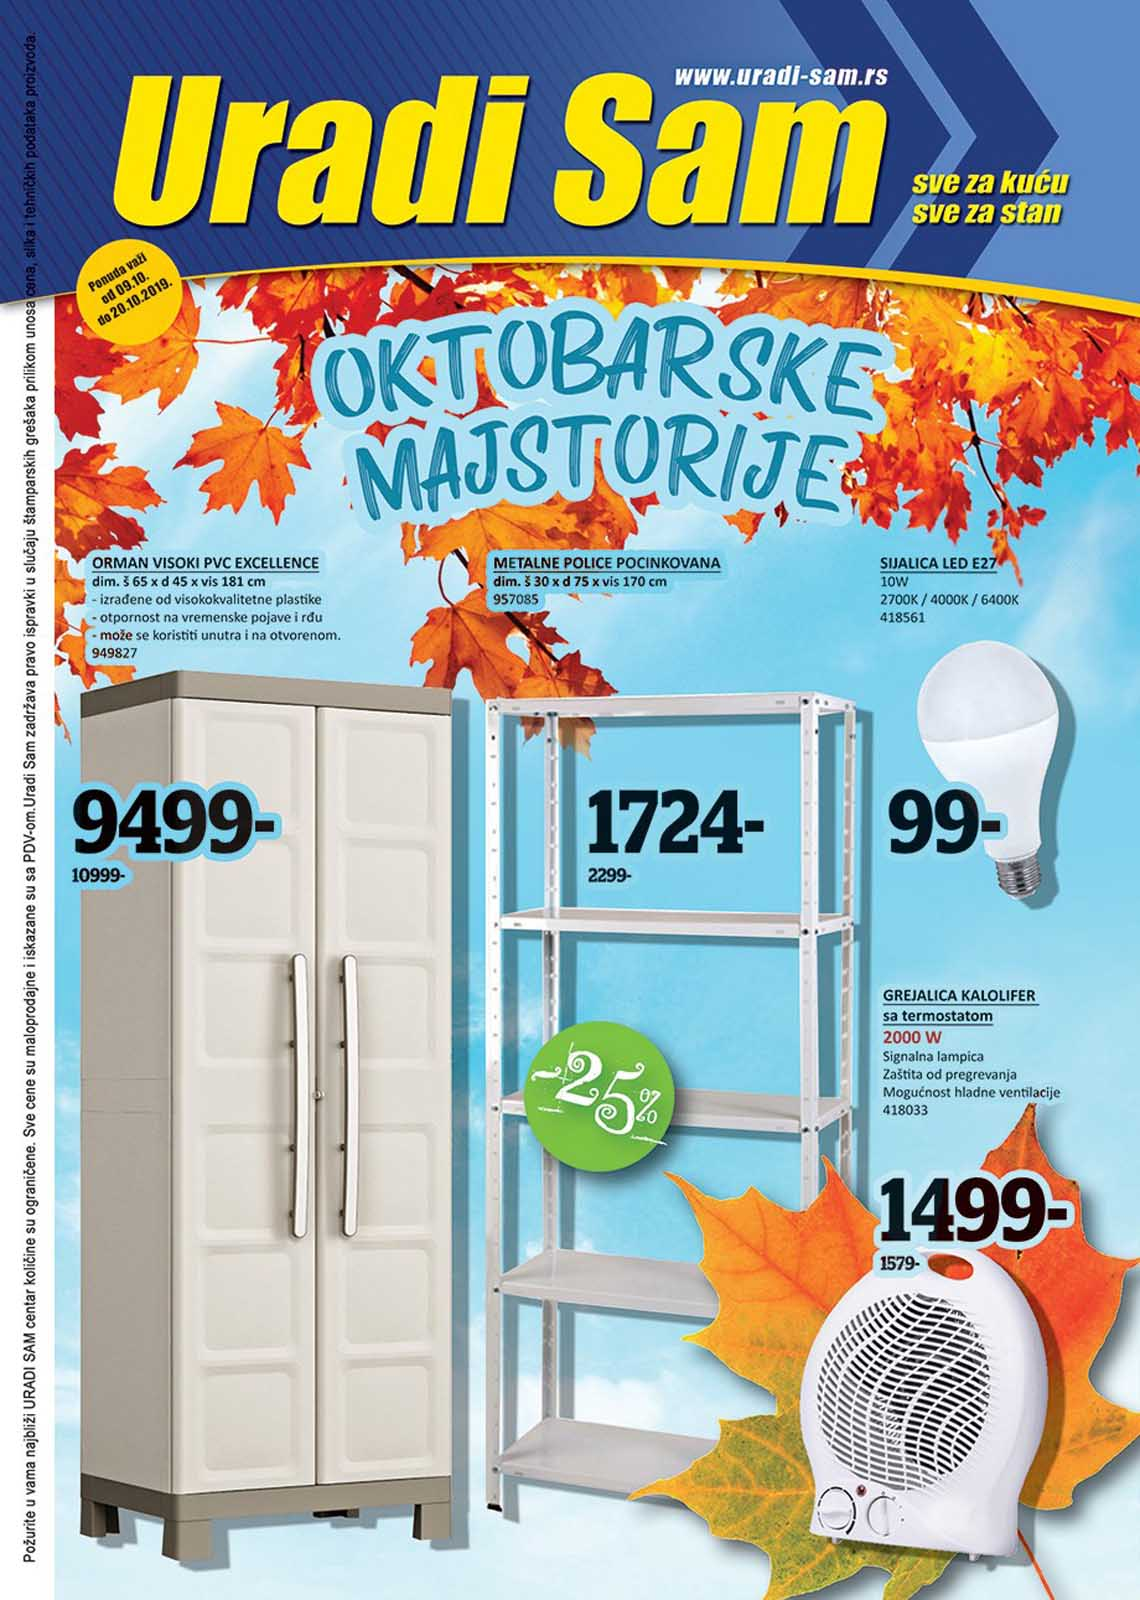 URADI SAM KATALOG Super akcija do 20.10.2019.